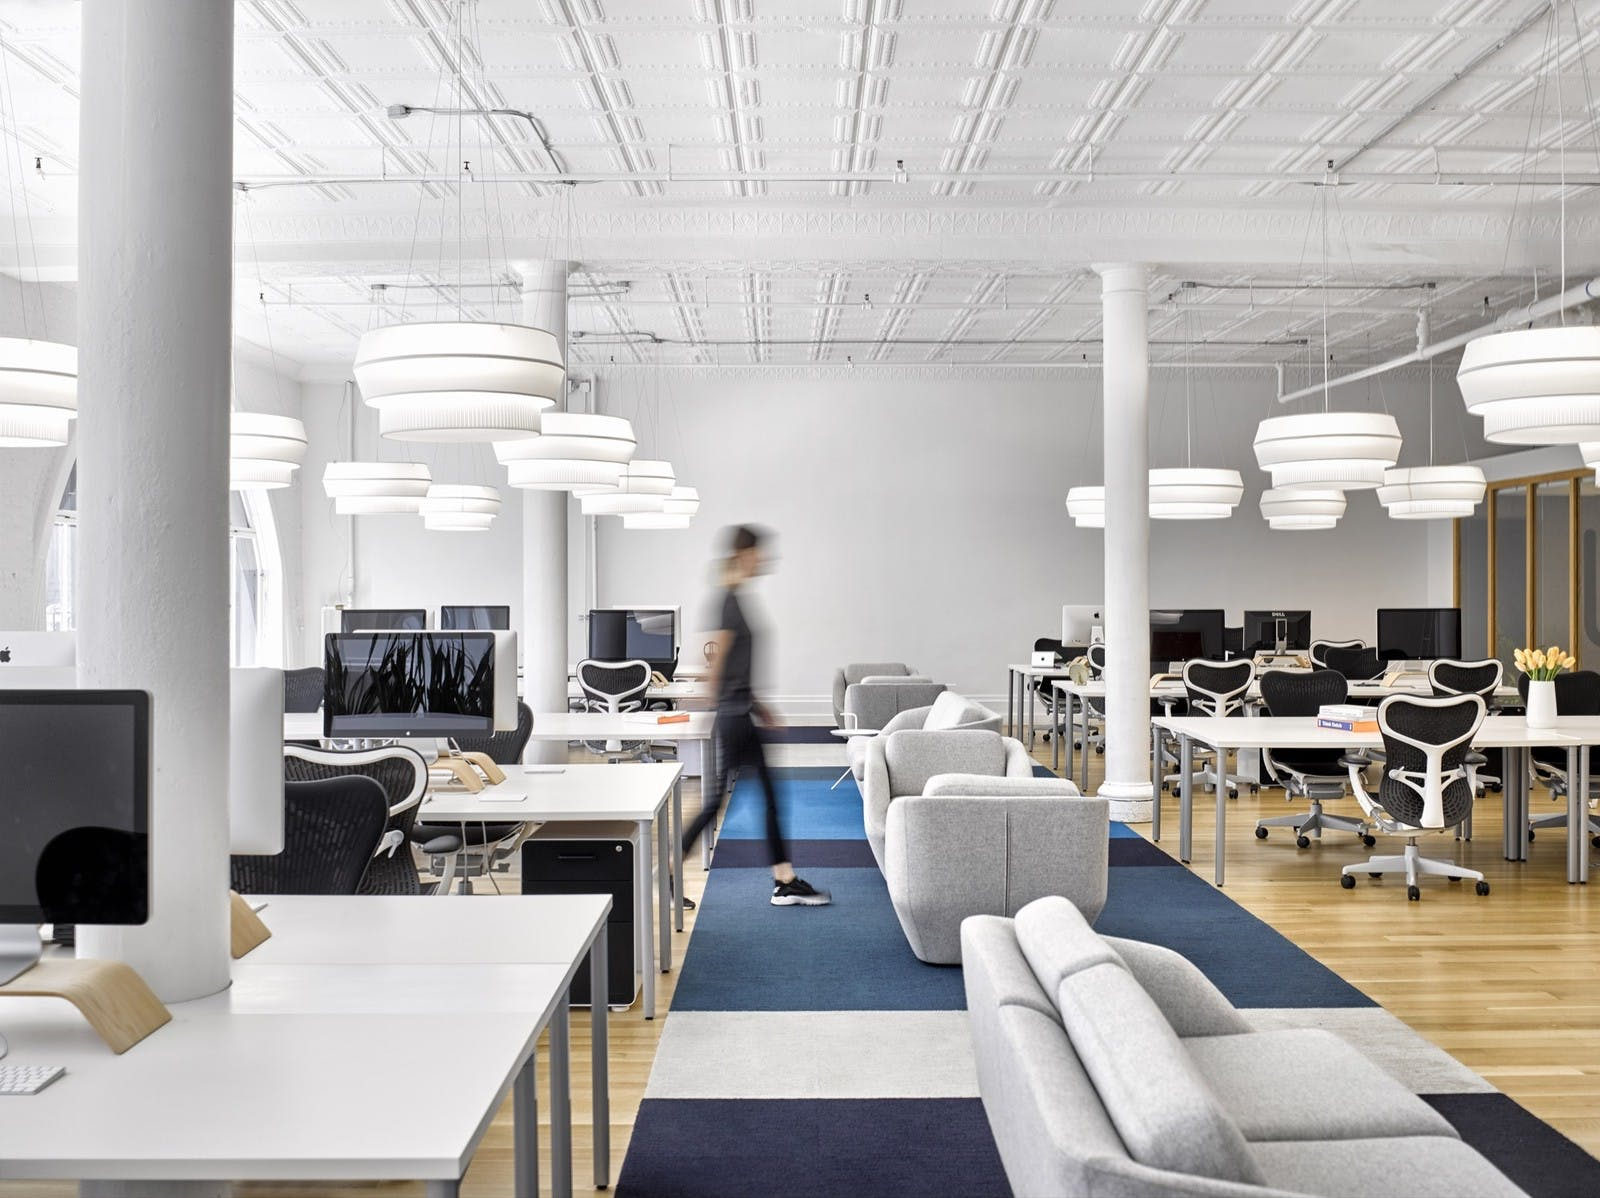 Modern open concept office space with couches, workstations, and chandelier lighting